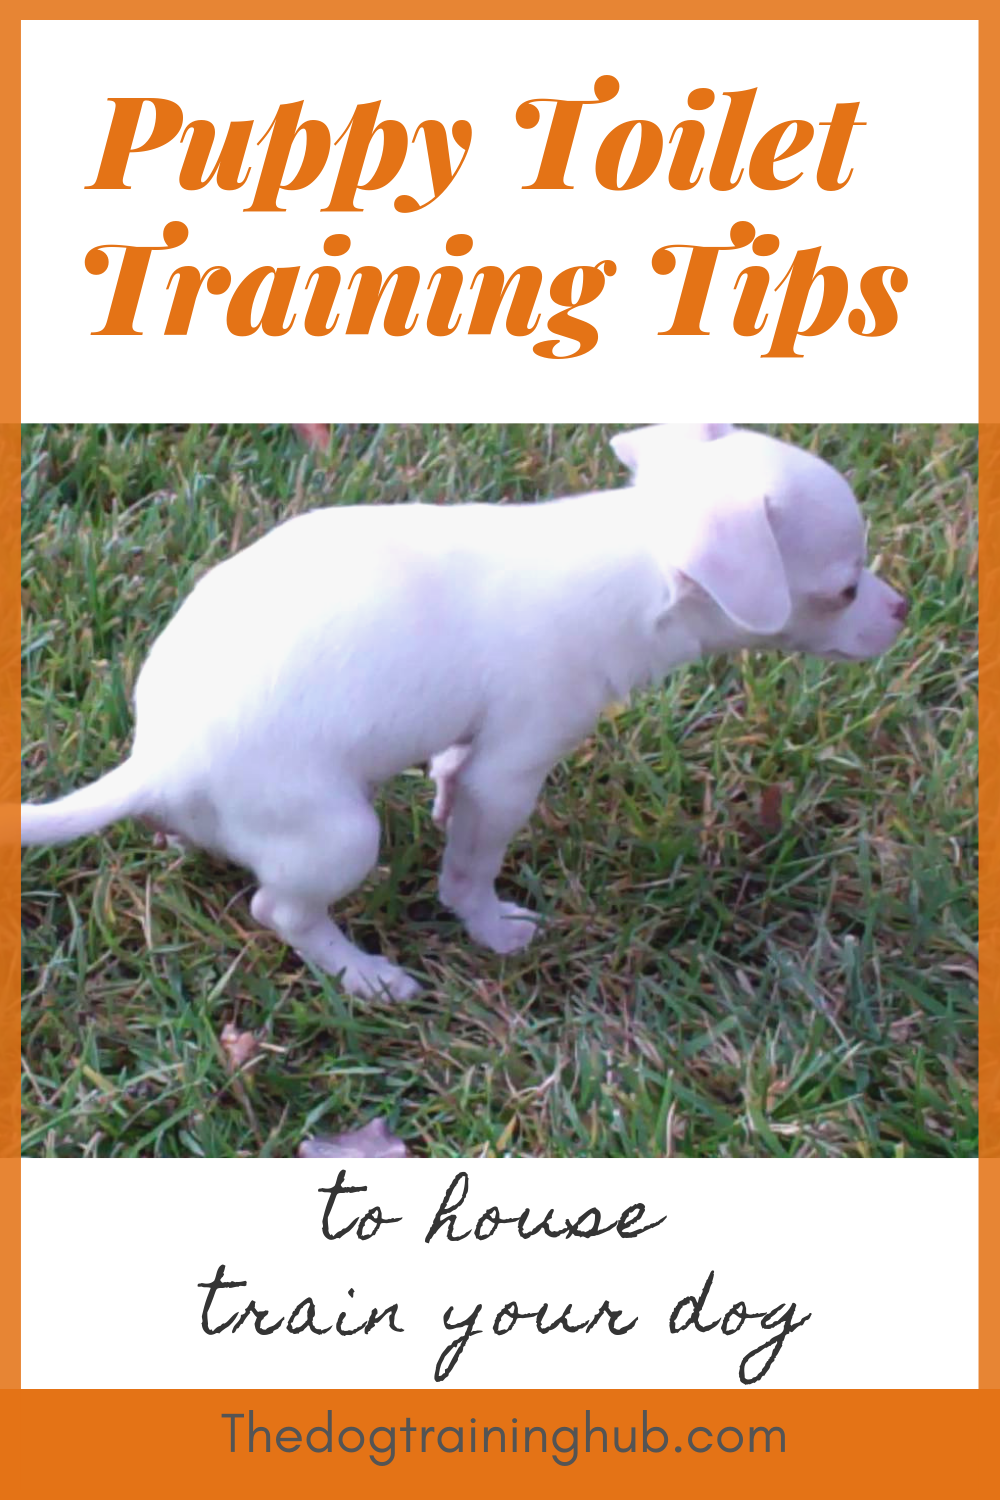 9 Puppy Toilet Training Tips To House Train Your Dog Puppy Toilet Training Training Your Dog Dog Potty Training